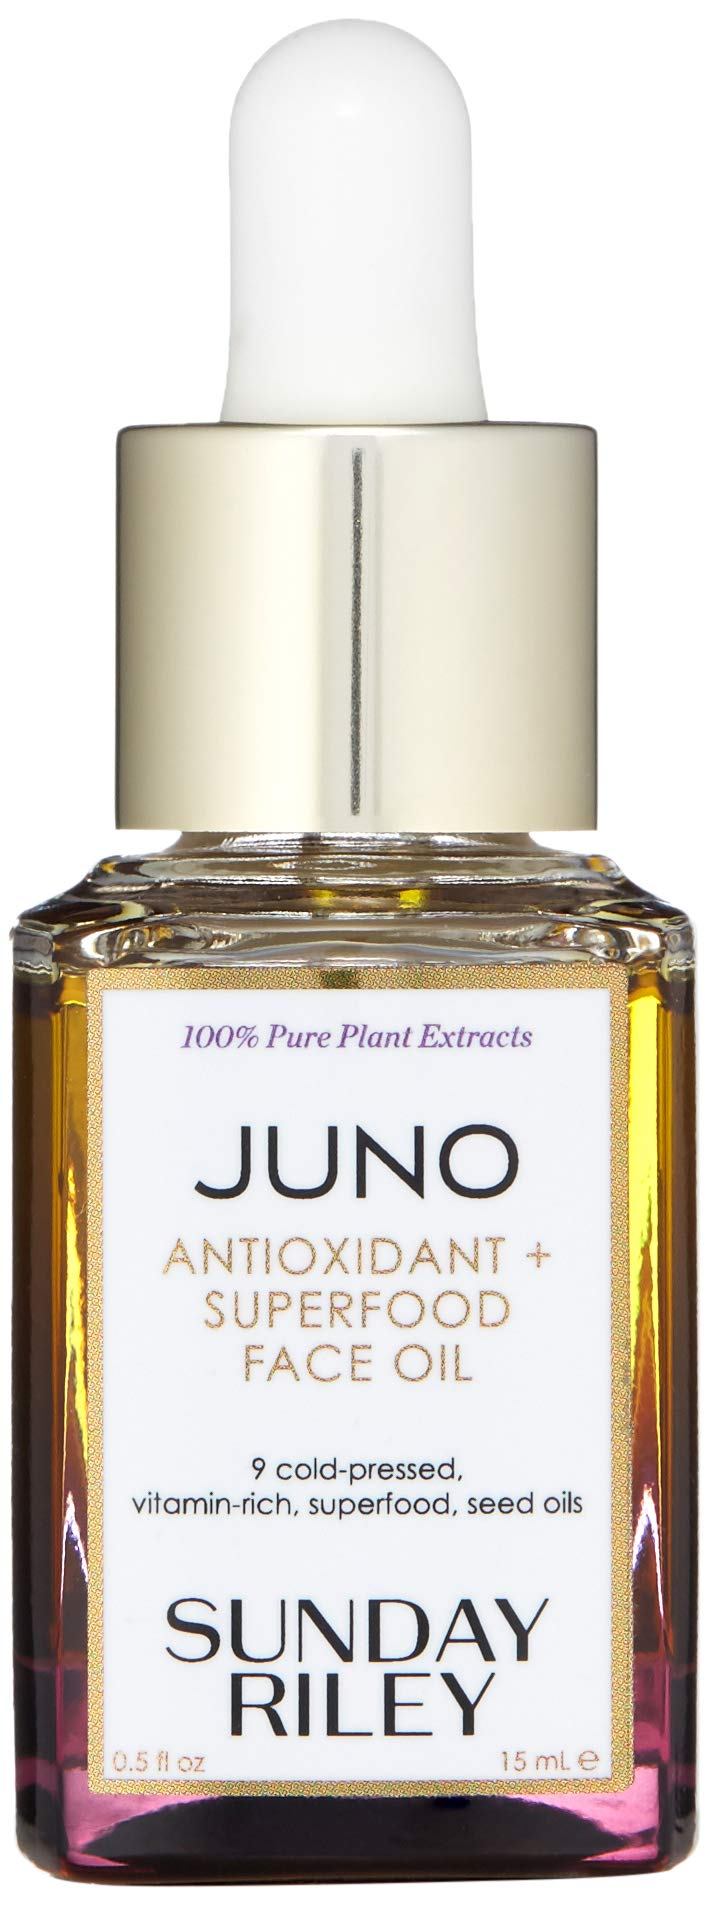 Sunday Riley JUNO Antioxidant + Superfood Face Oil, 0.5 Fl Oz